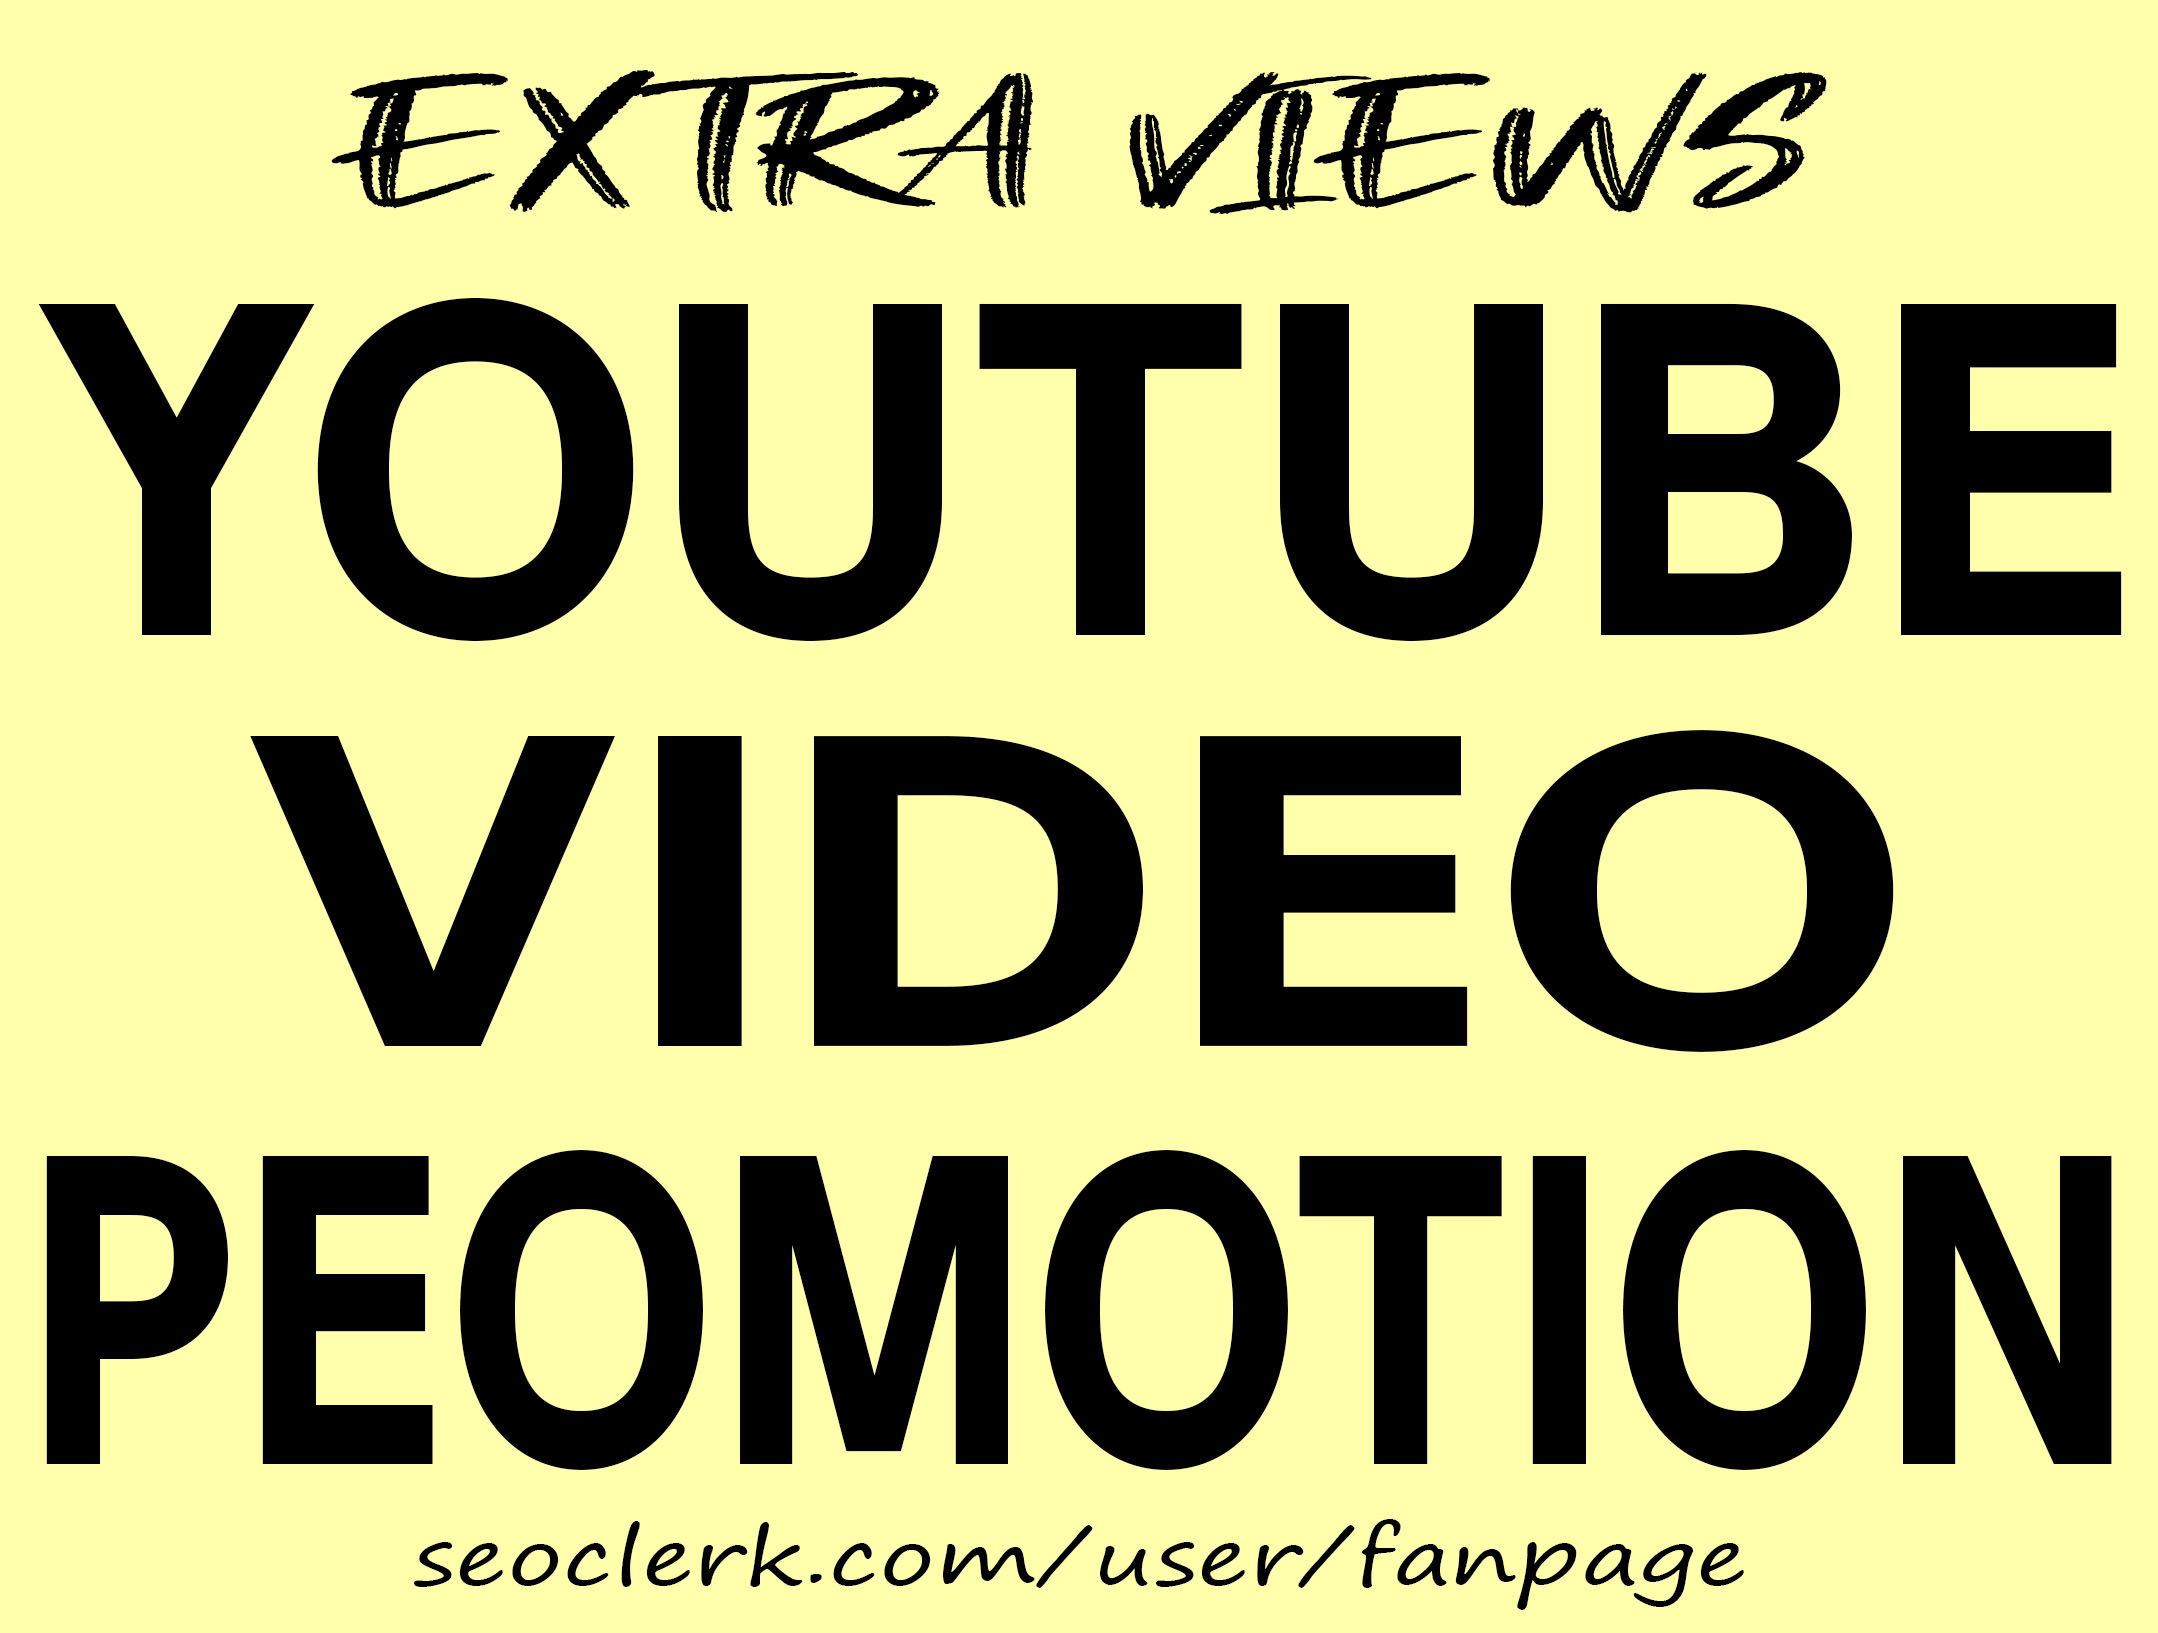 YouTube Video Viral Promotion & Marketing Best For Ranking